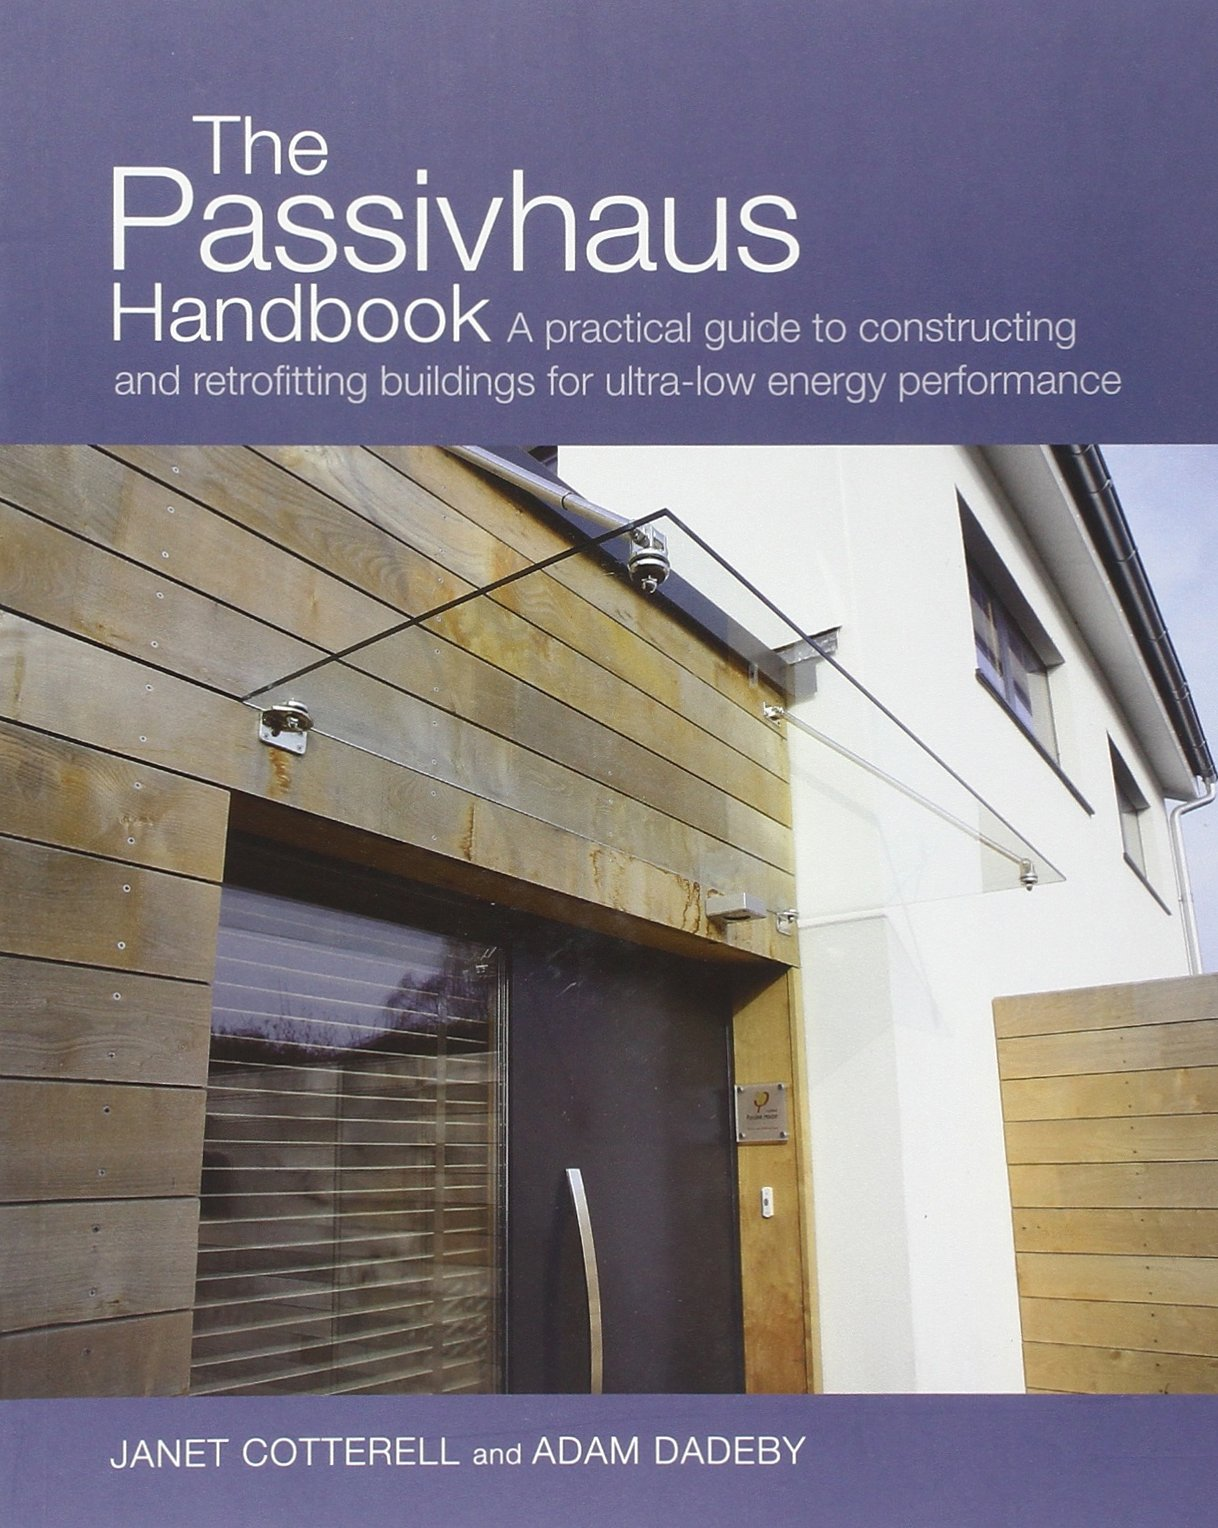 Download The Passivhaus Handbook: A Practical Guide to Constructing and Retrofitting Buildings for Ultra-Low Energy Performance (Sustainable Building) pdf epub